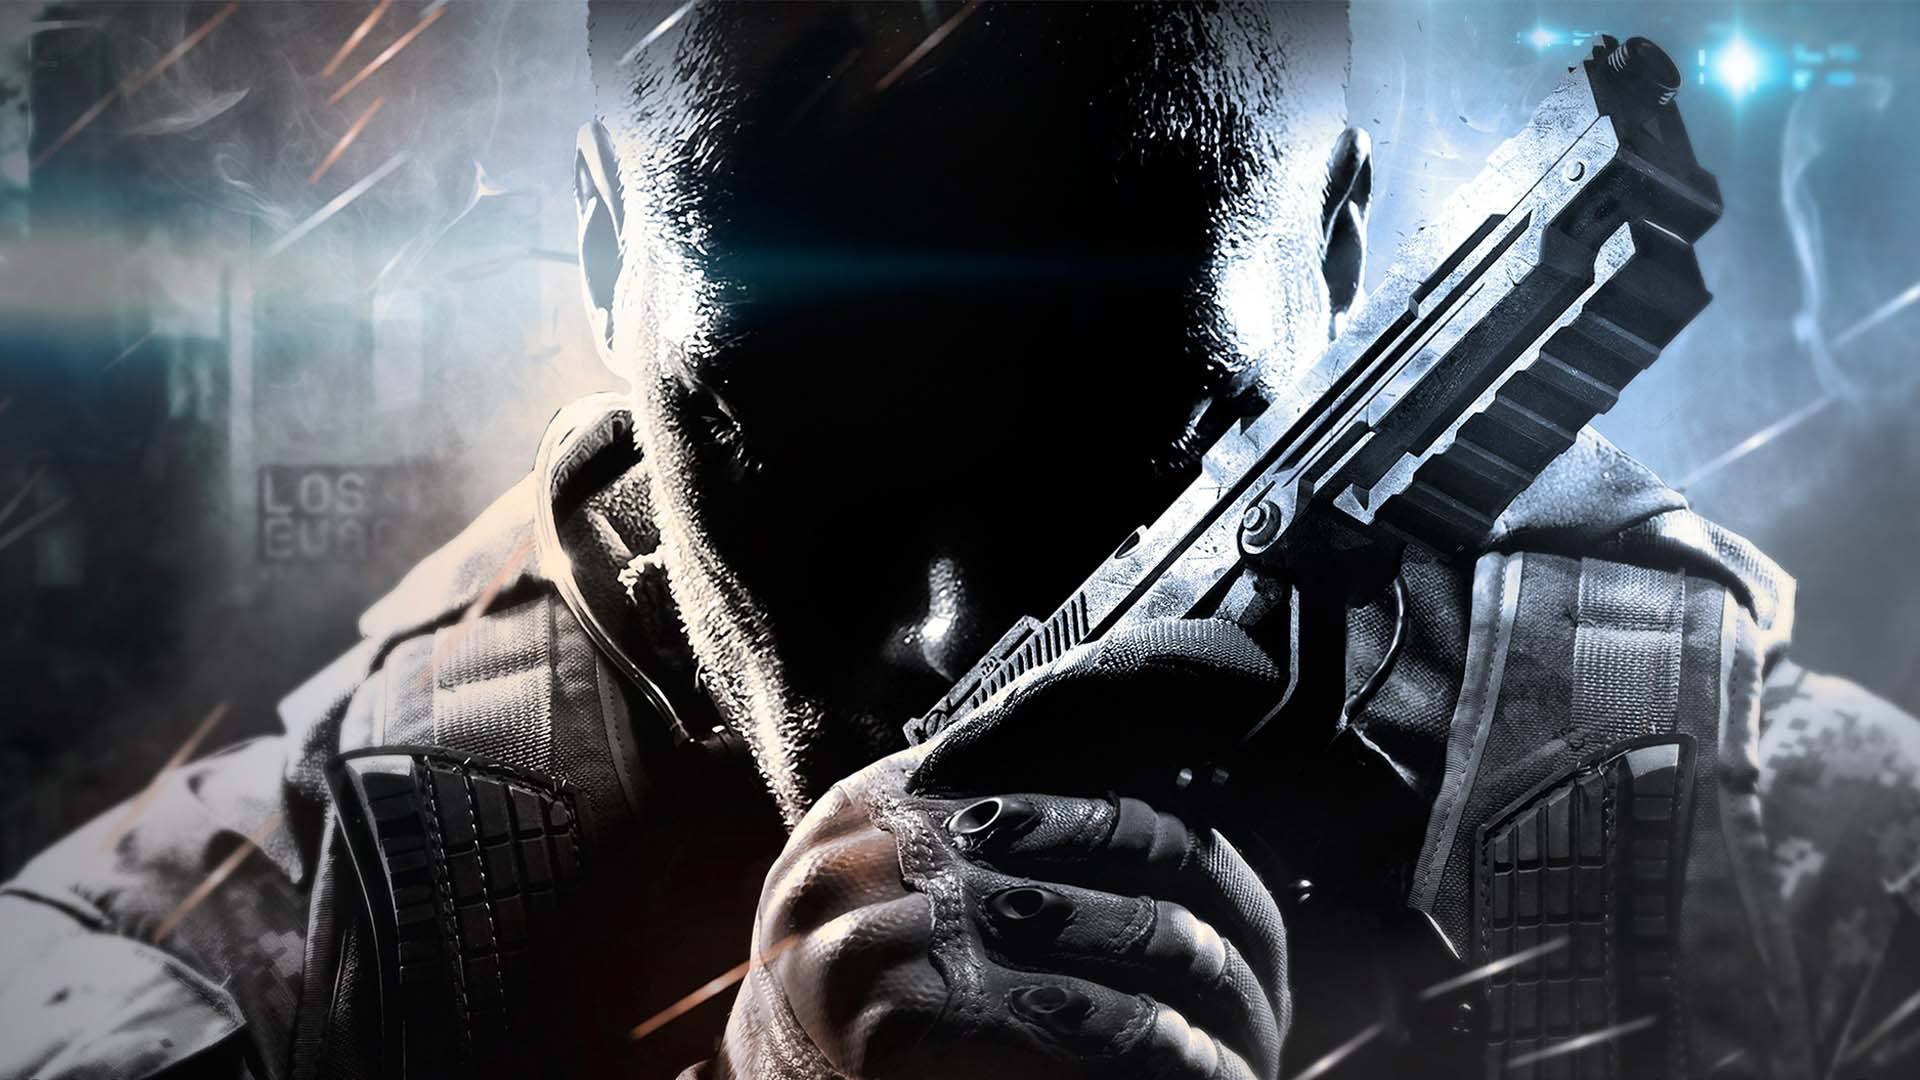 75 Call Of Duty Ghost Wallpaper On Wallpapersafari